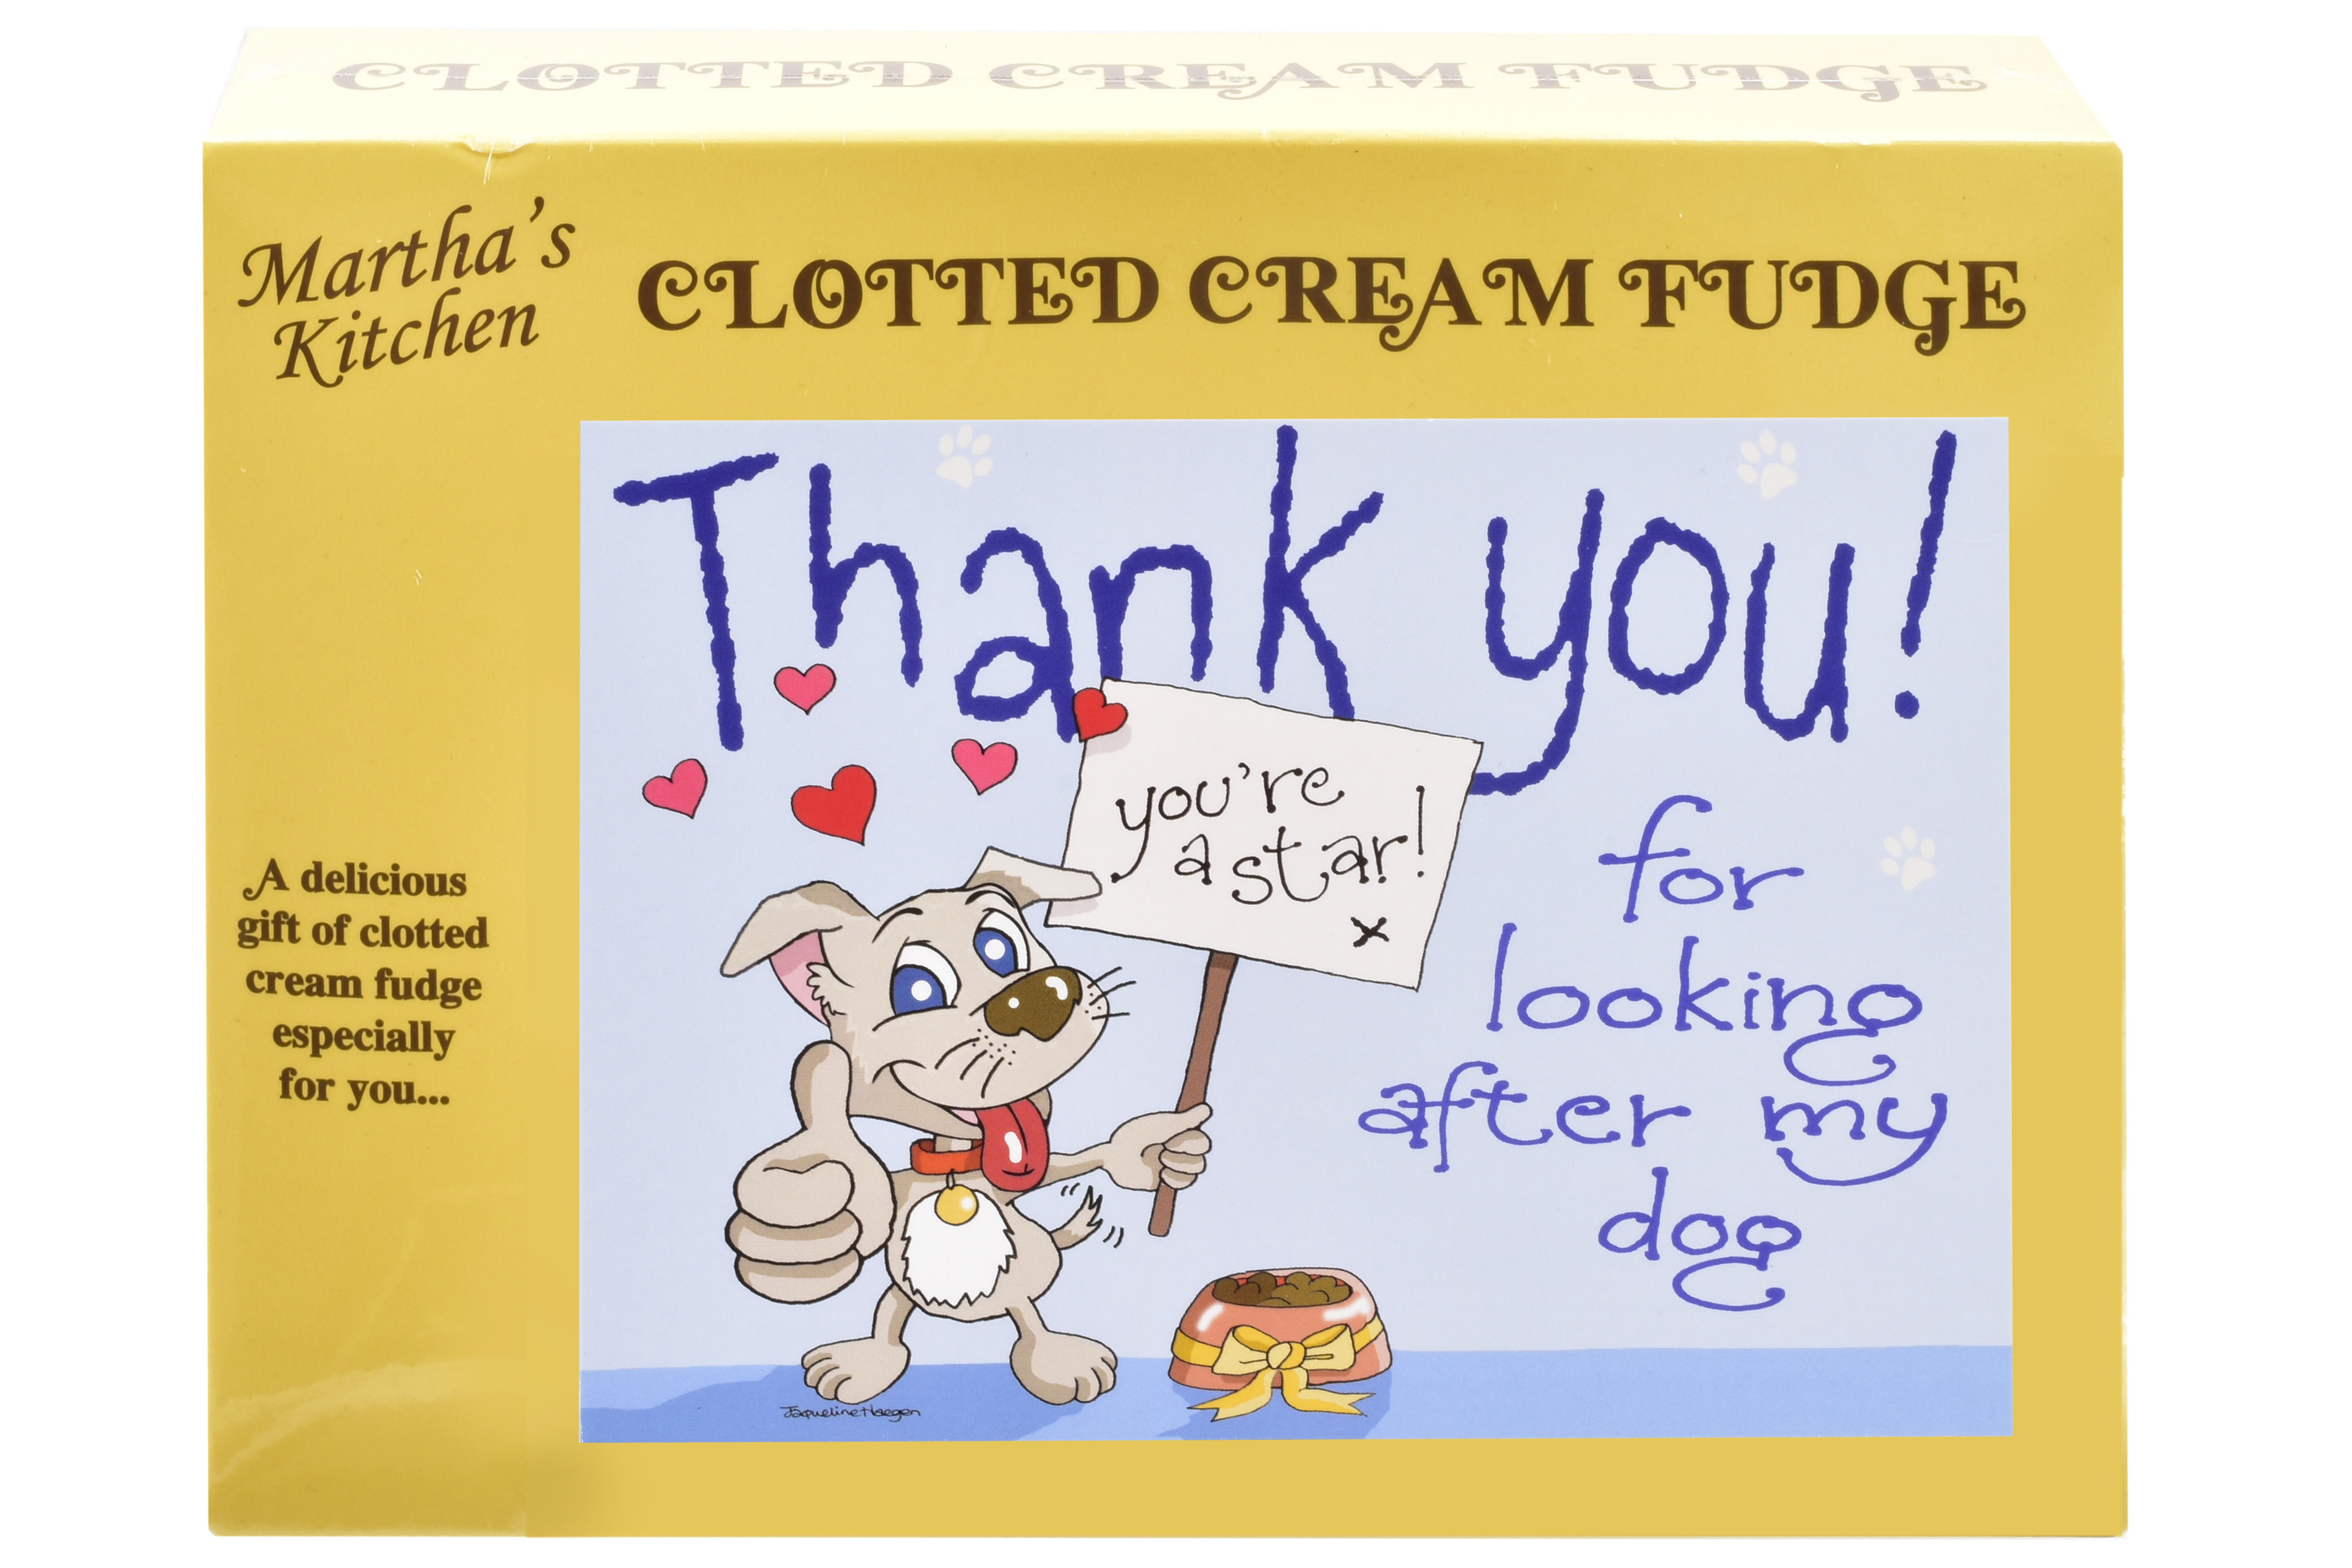 100g Clotted Cream Fudge 'Dog' Postcard Box